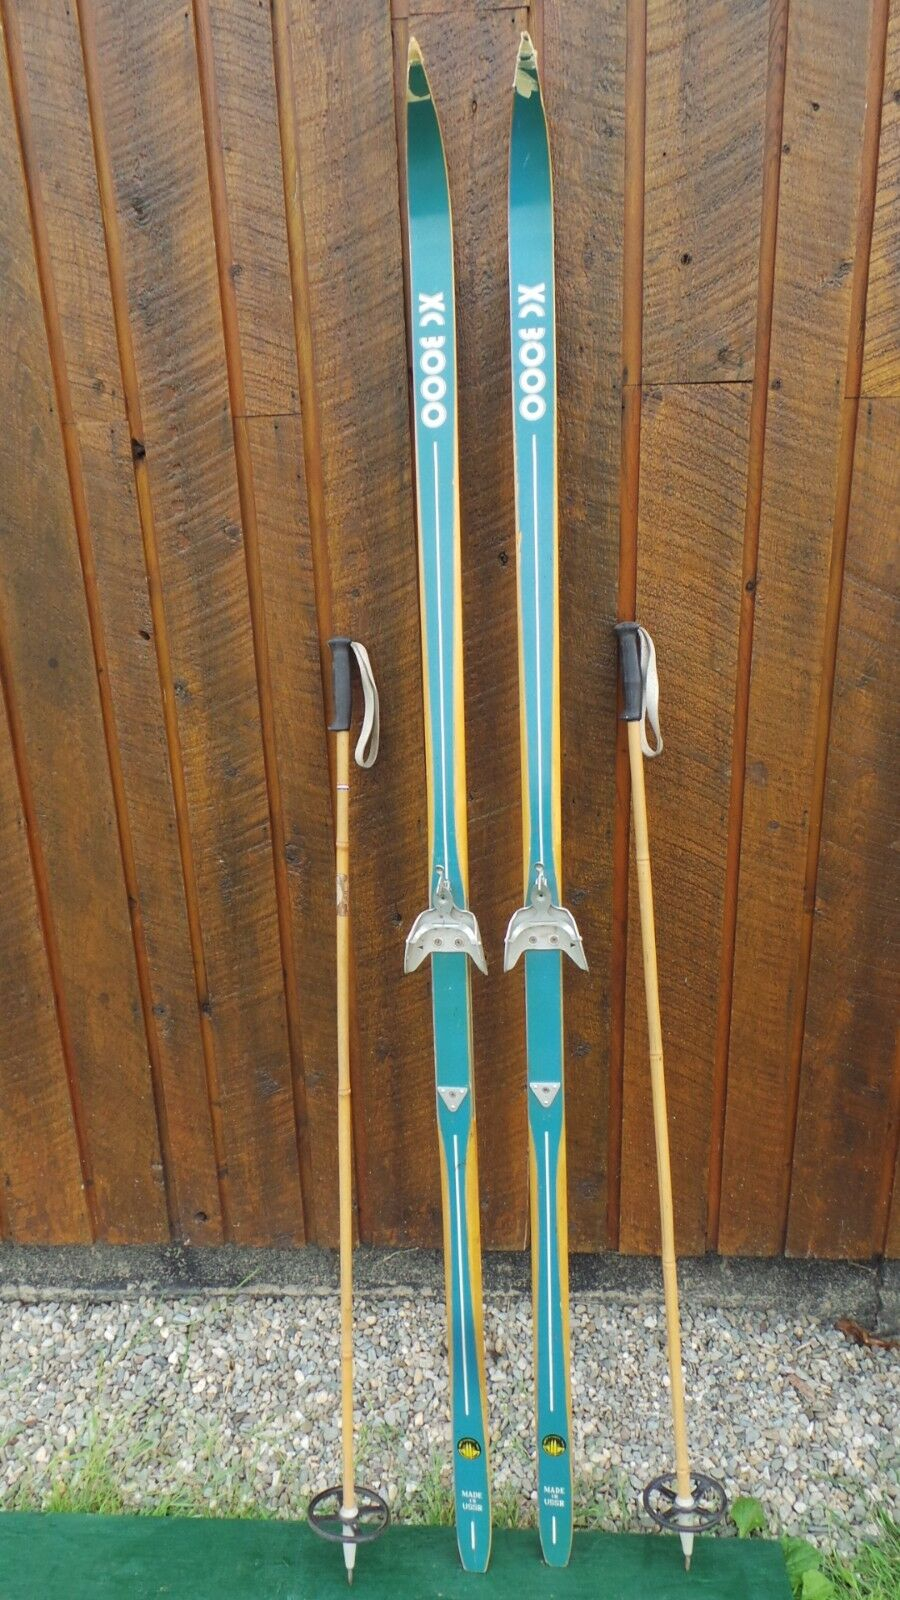 Vintage Wooden Skis with Original Finish and Bindings